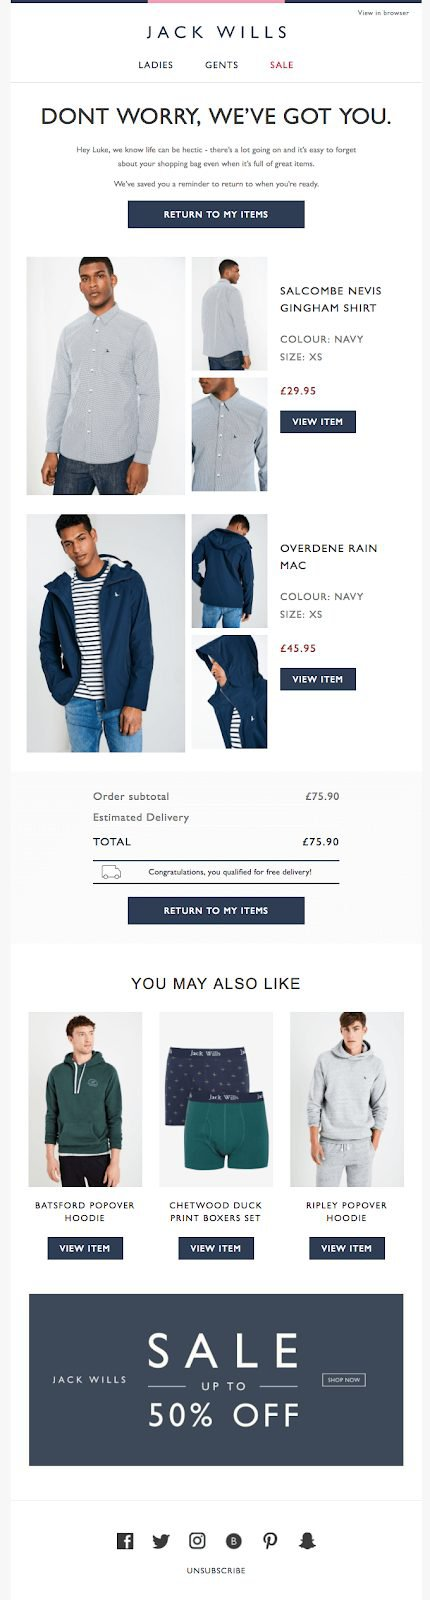 E-mail Marketing Example - Jack Wills